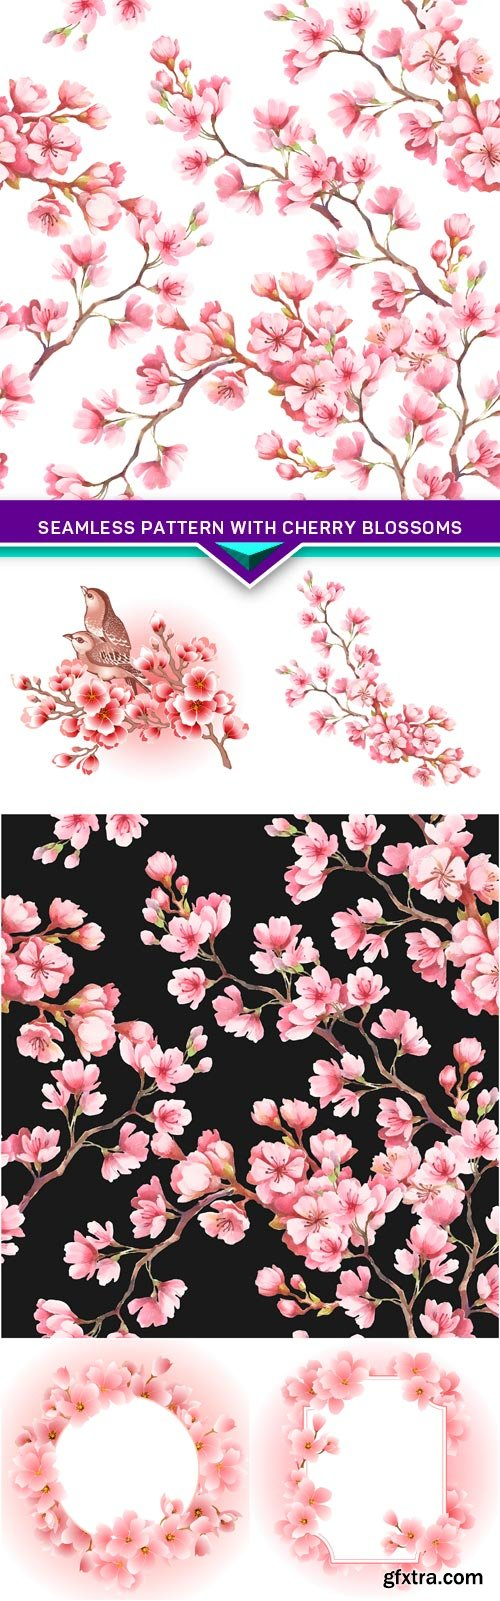 Seamless pattern with cherry blossoms 6X JPEG